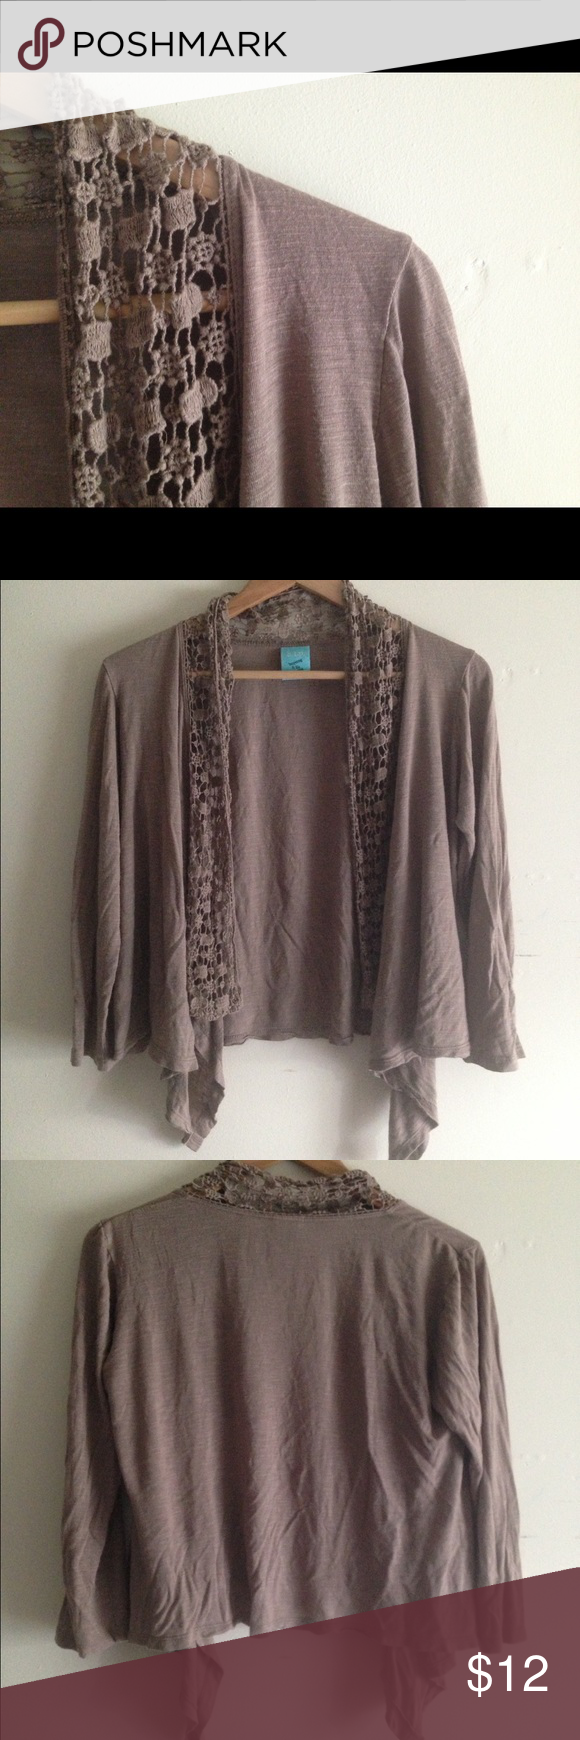 Lace cardigan | Conditioning